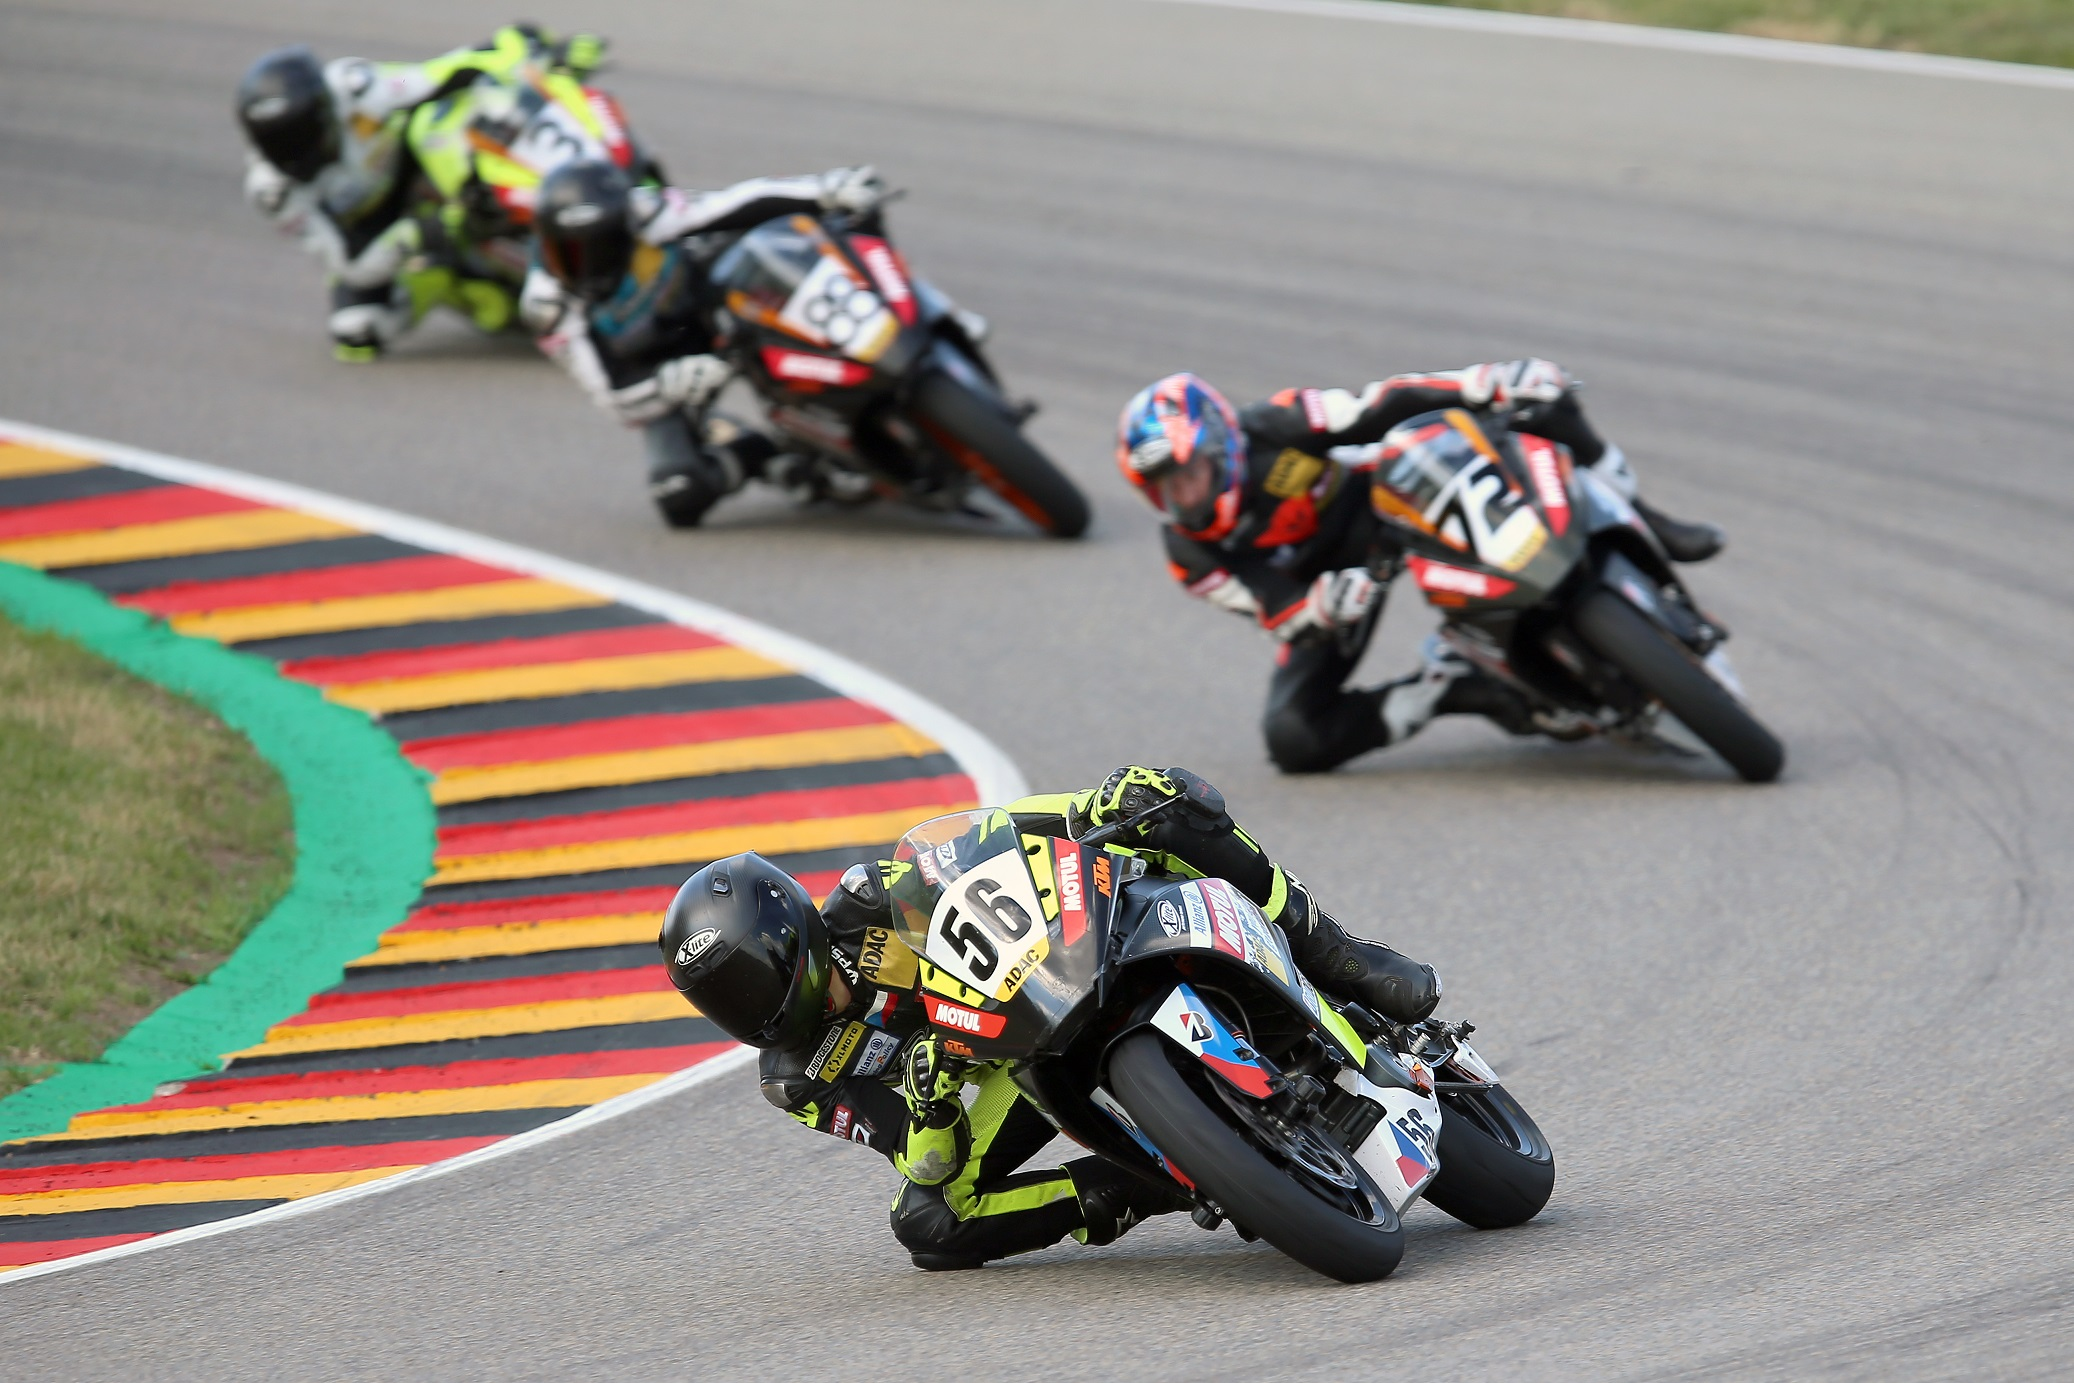 IDM Supersport 300: Der ADAC Junior Cup-Vize David Kubáň greift an